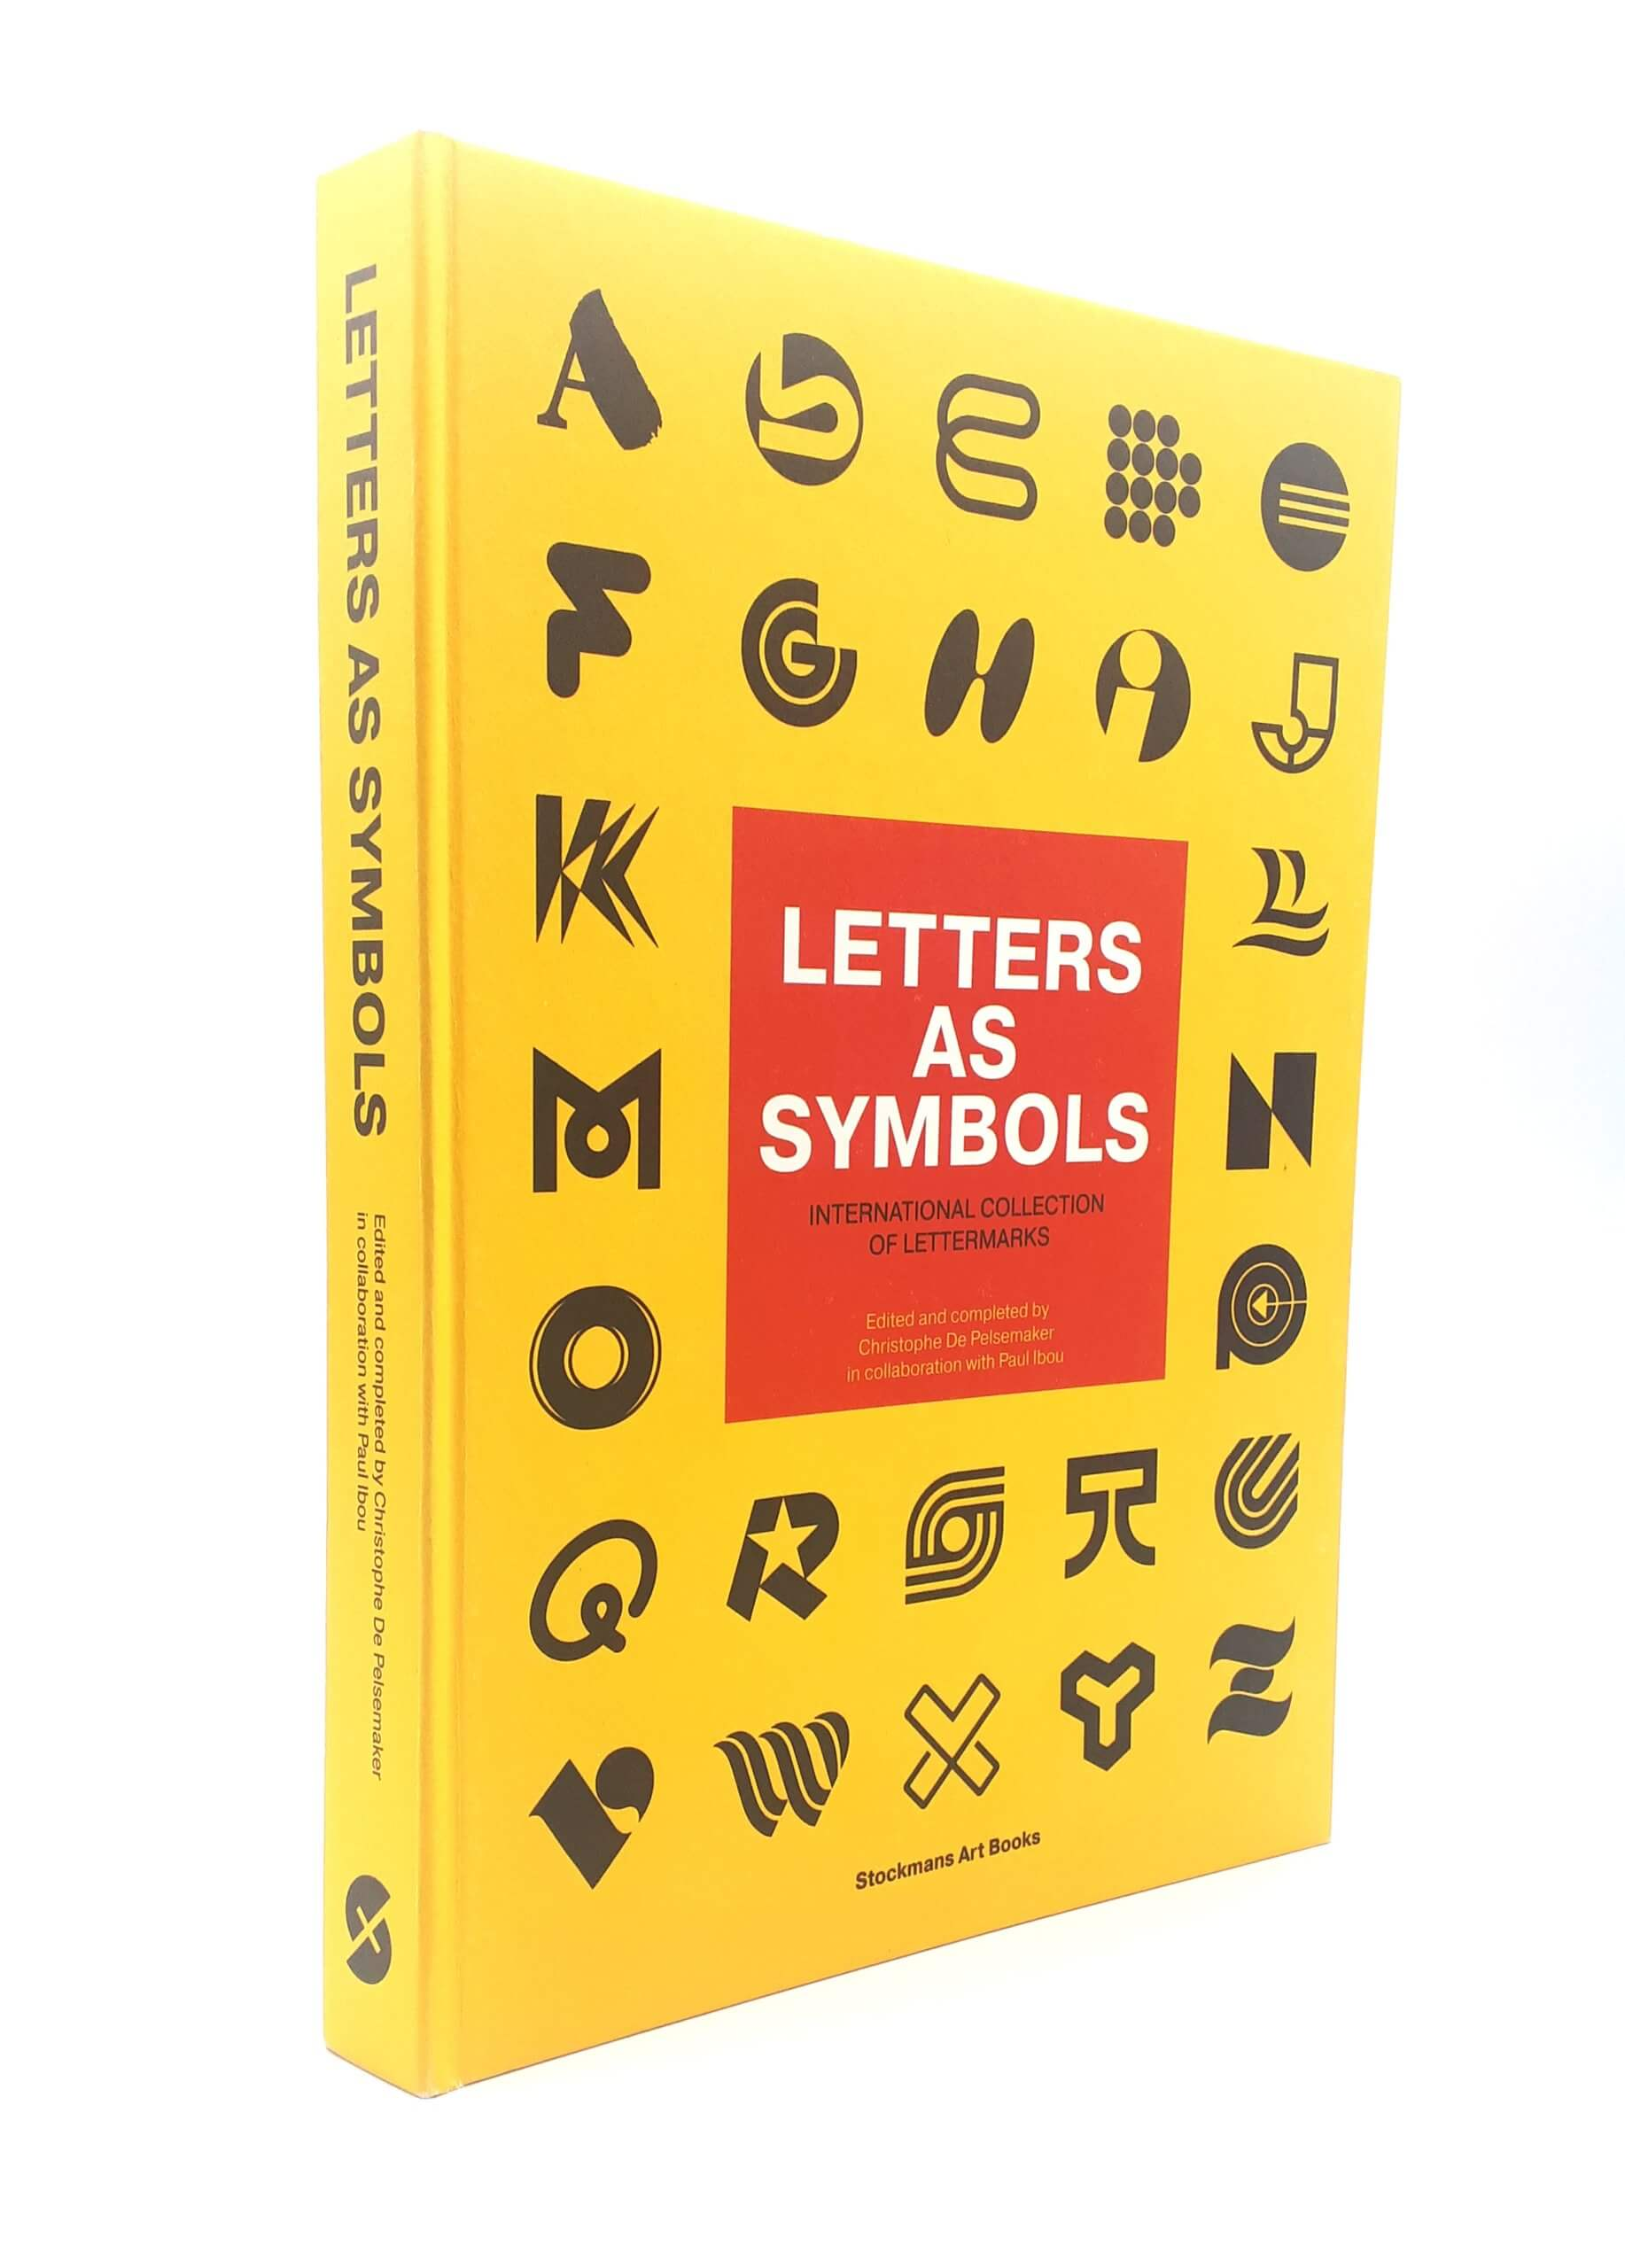 Letters As Symbols by Christophe De Pelsemaker and Paul Ibou - Book Review - Cover Design